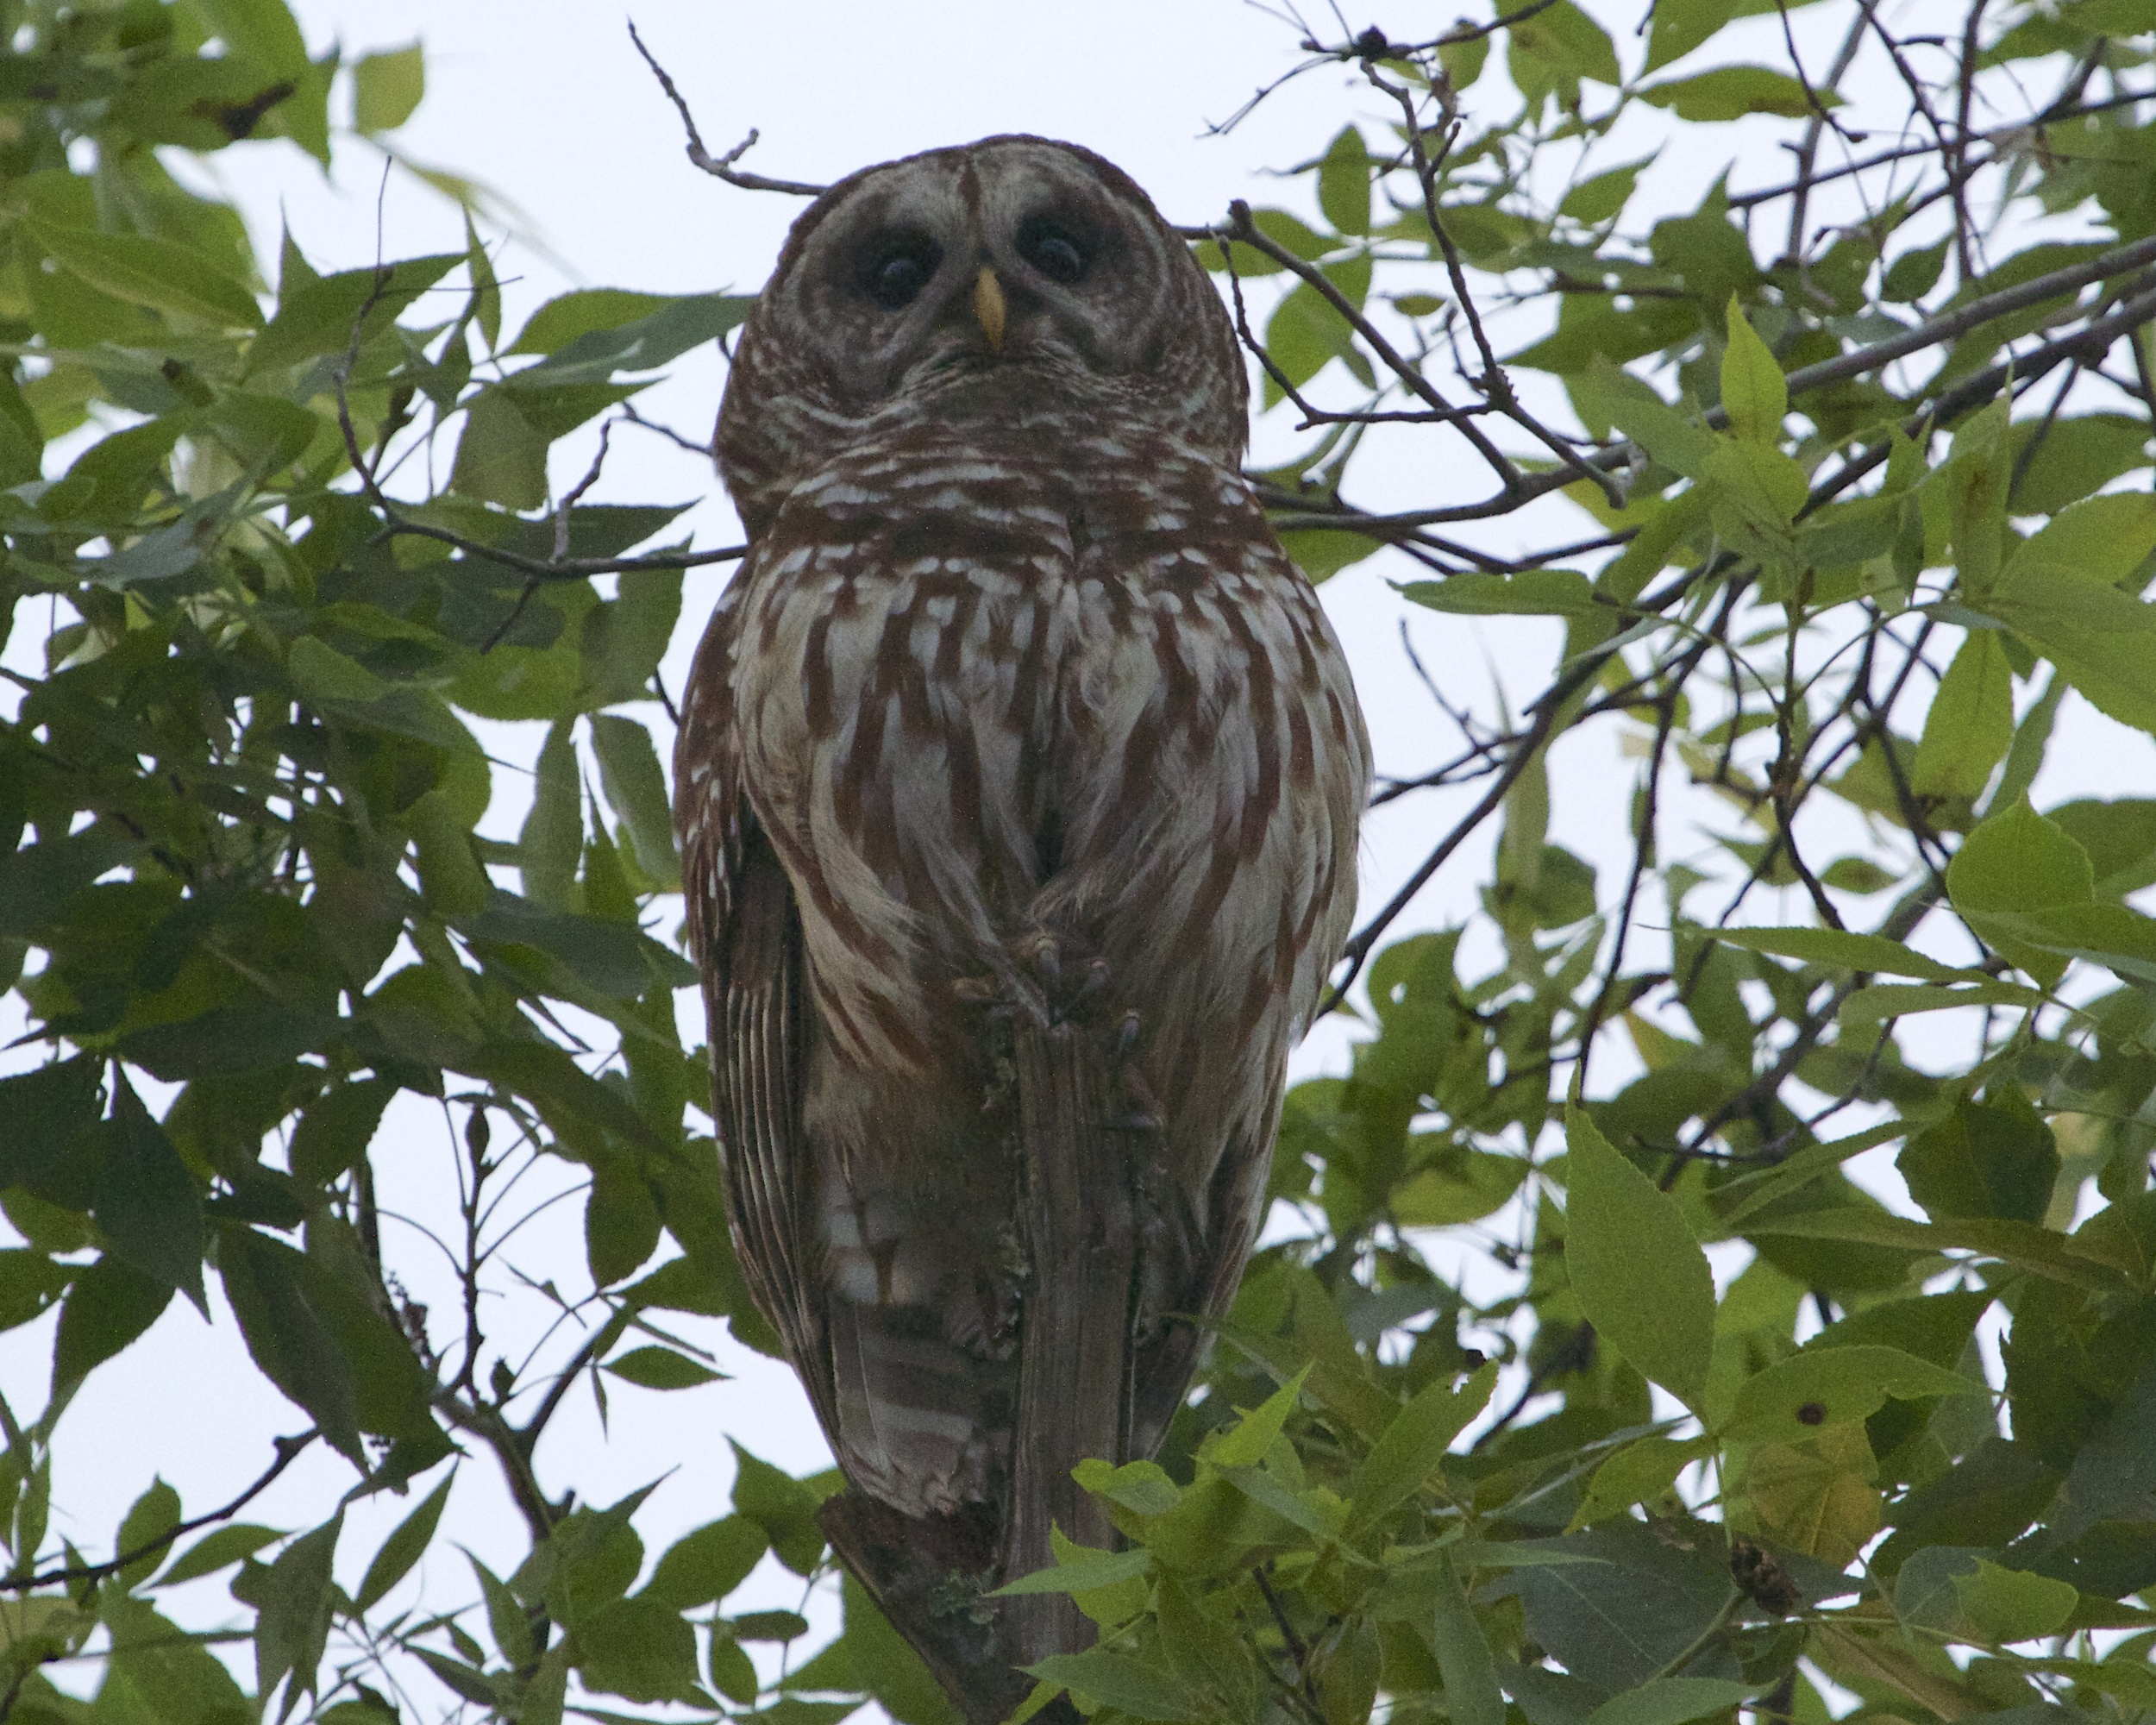 One of the two adult Barred Owls keeps a watch on me while I watch the fledglings .